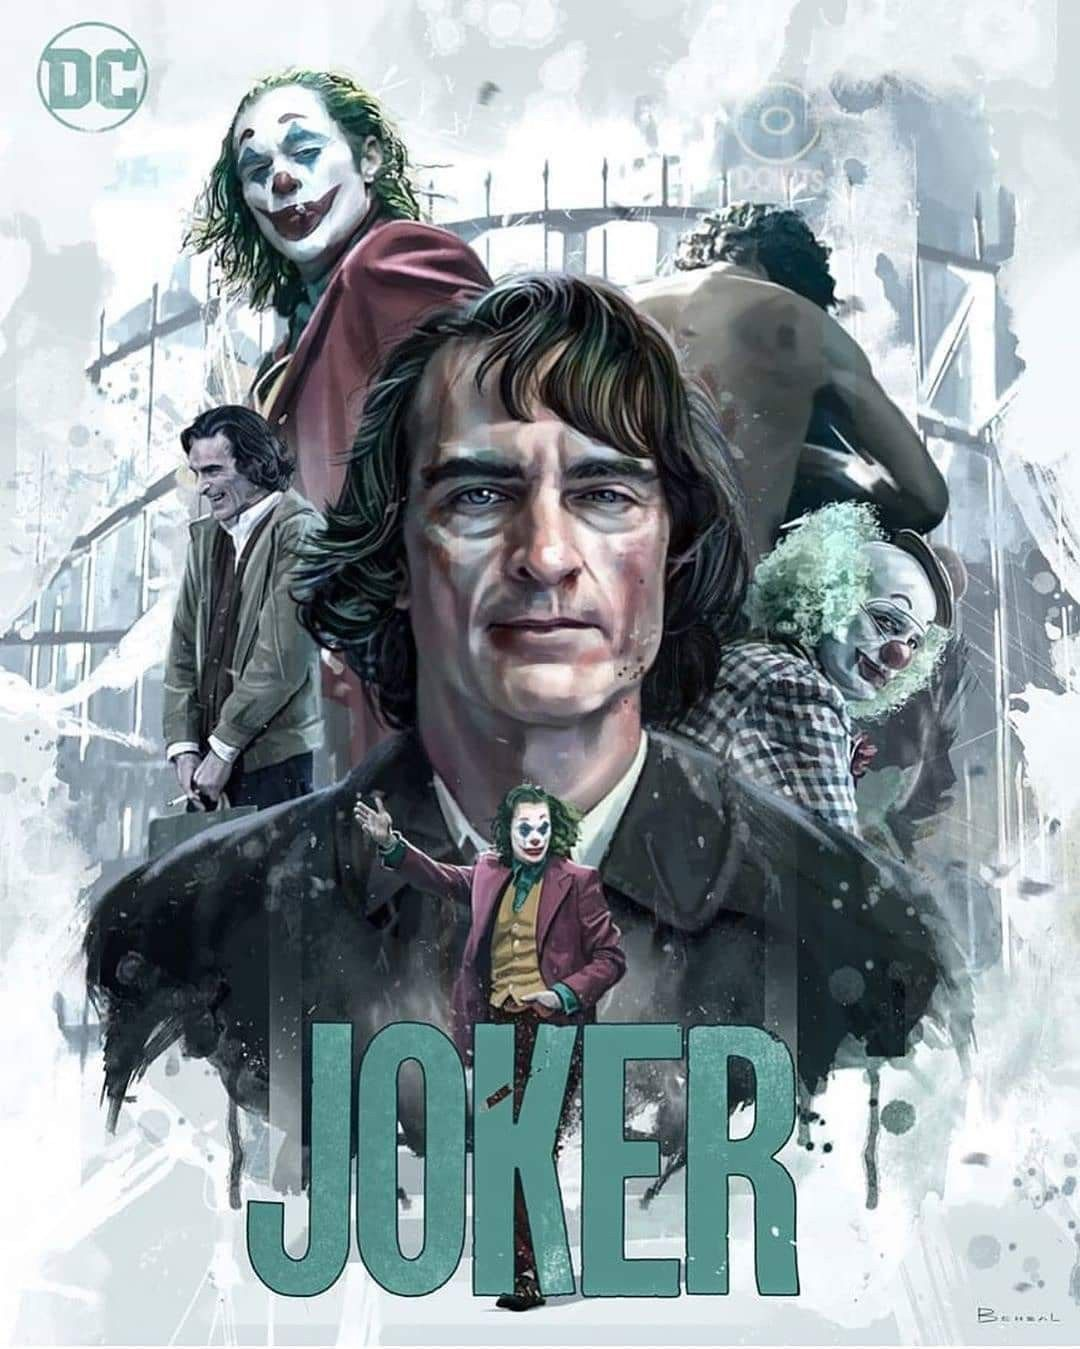 Joker Fan Made Poster Joker Poster Joker Joker Art